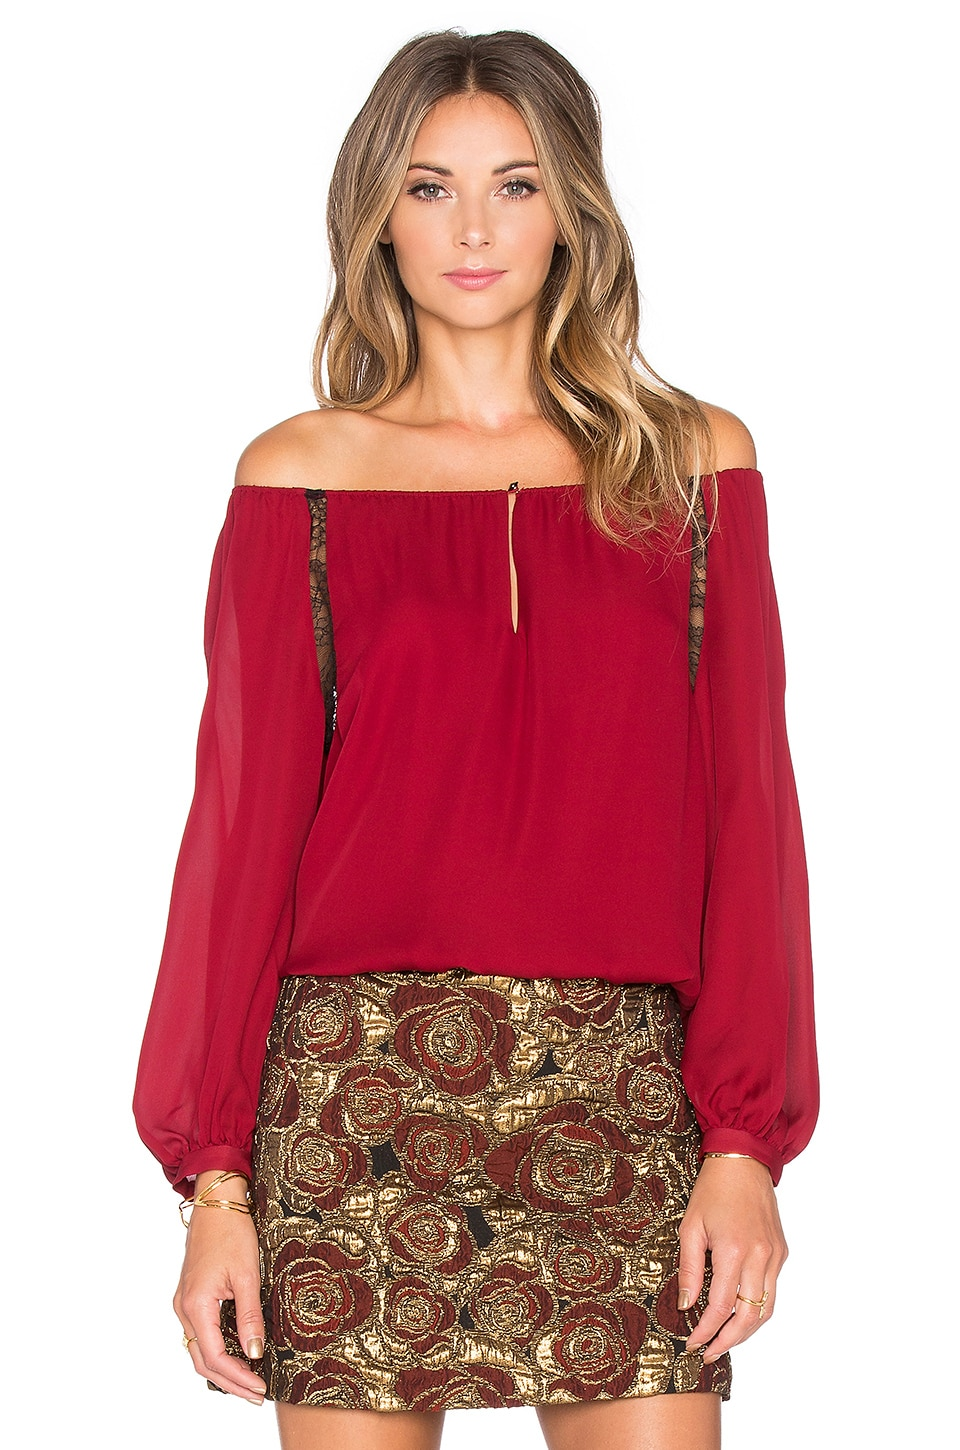 Alice + Olivia Daroda Top in Red & Black